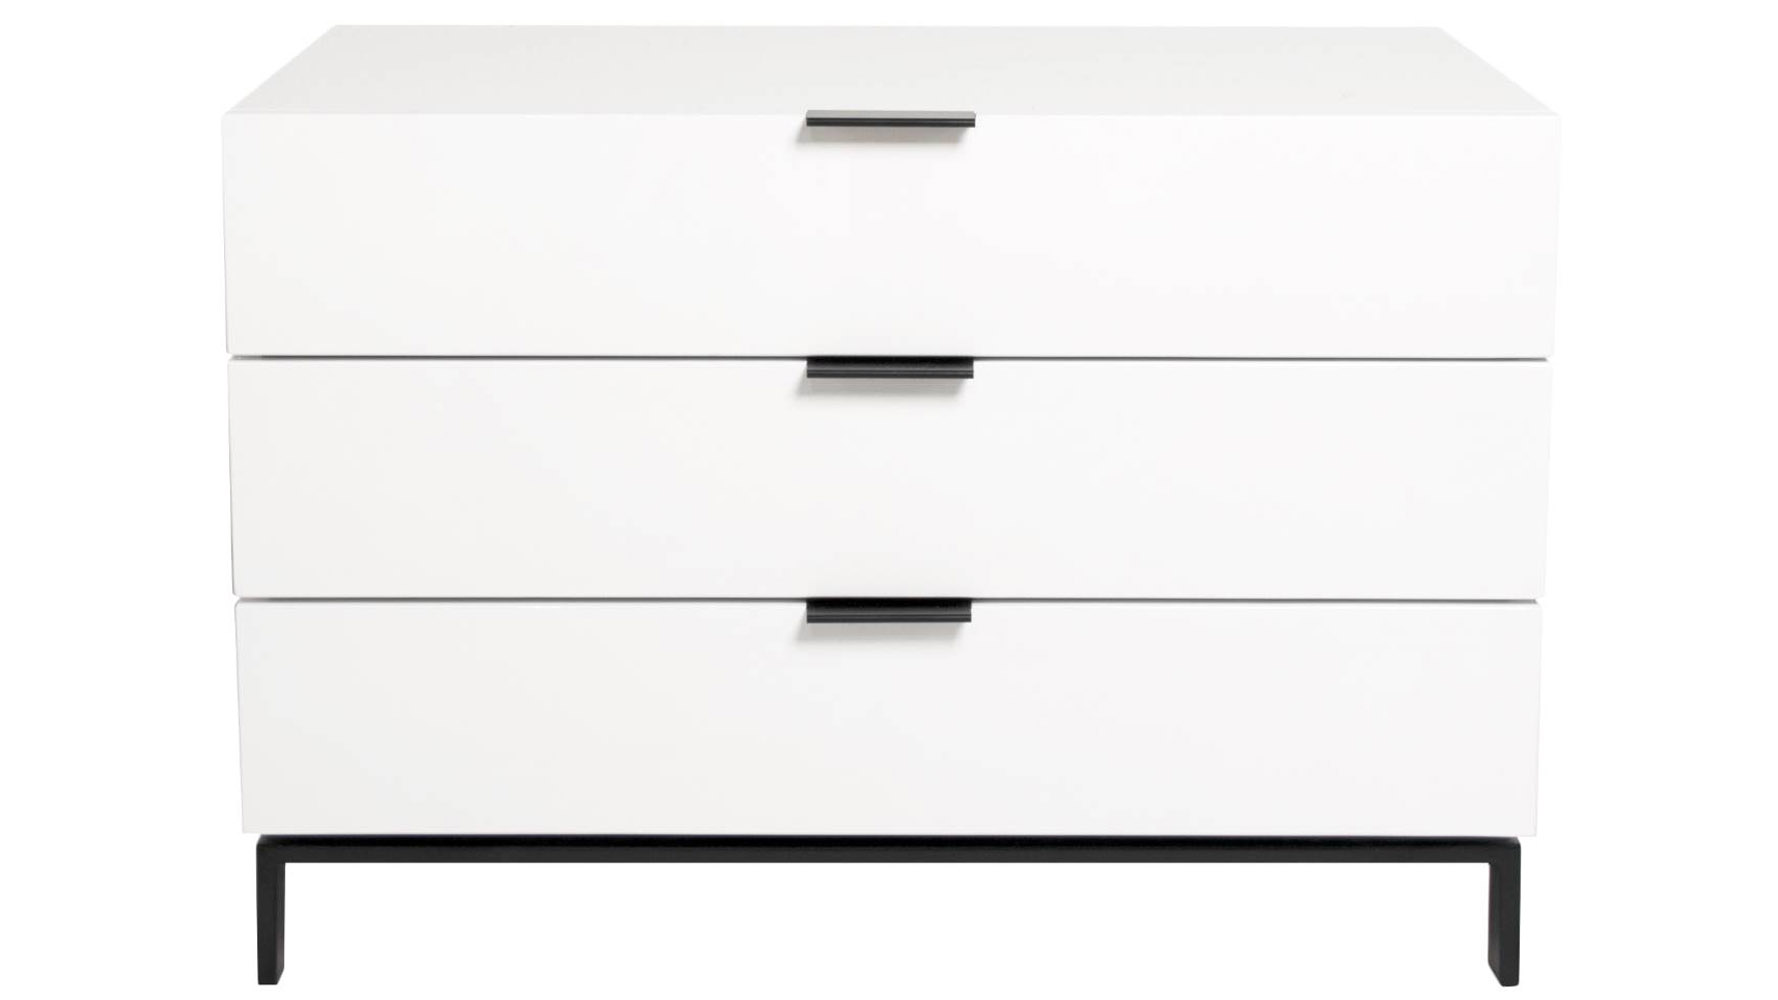 mm ph drawers preparation fabrication ambient steel drawer unit pd with br stainless undercounter modular units